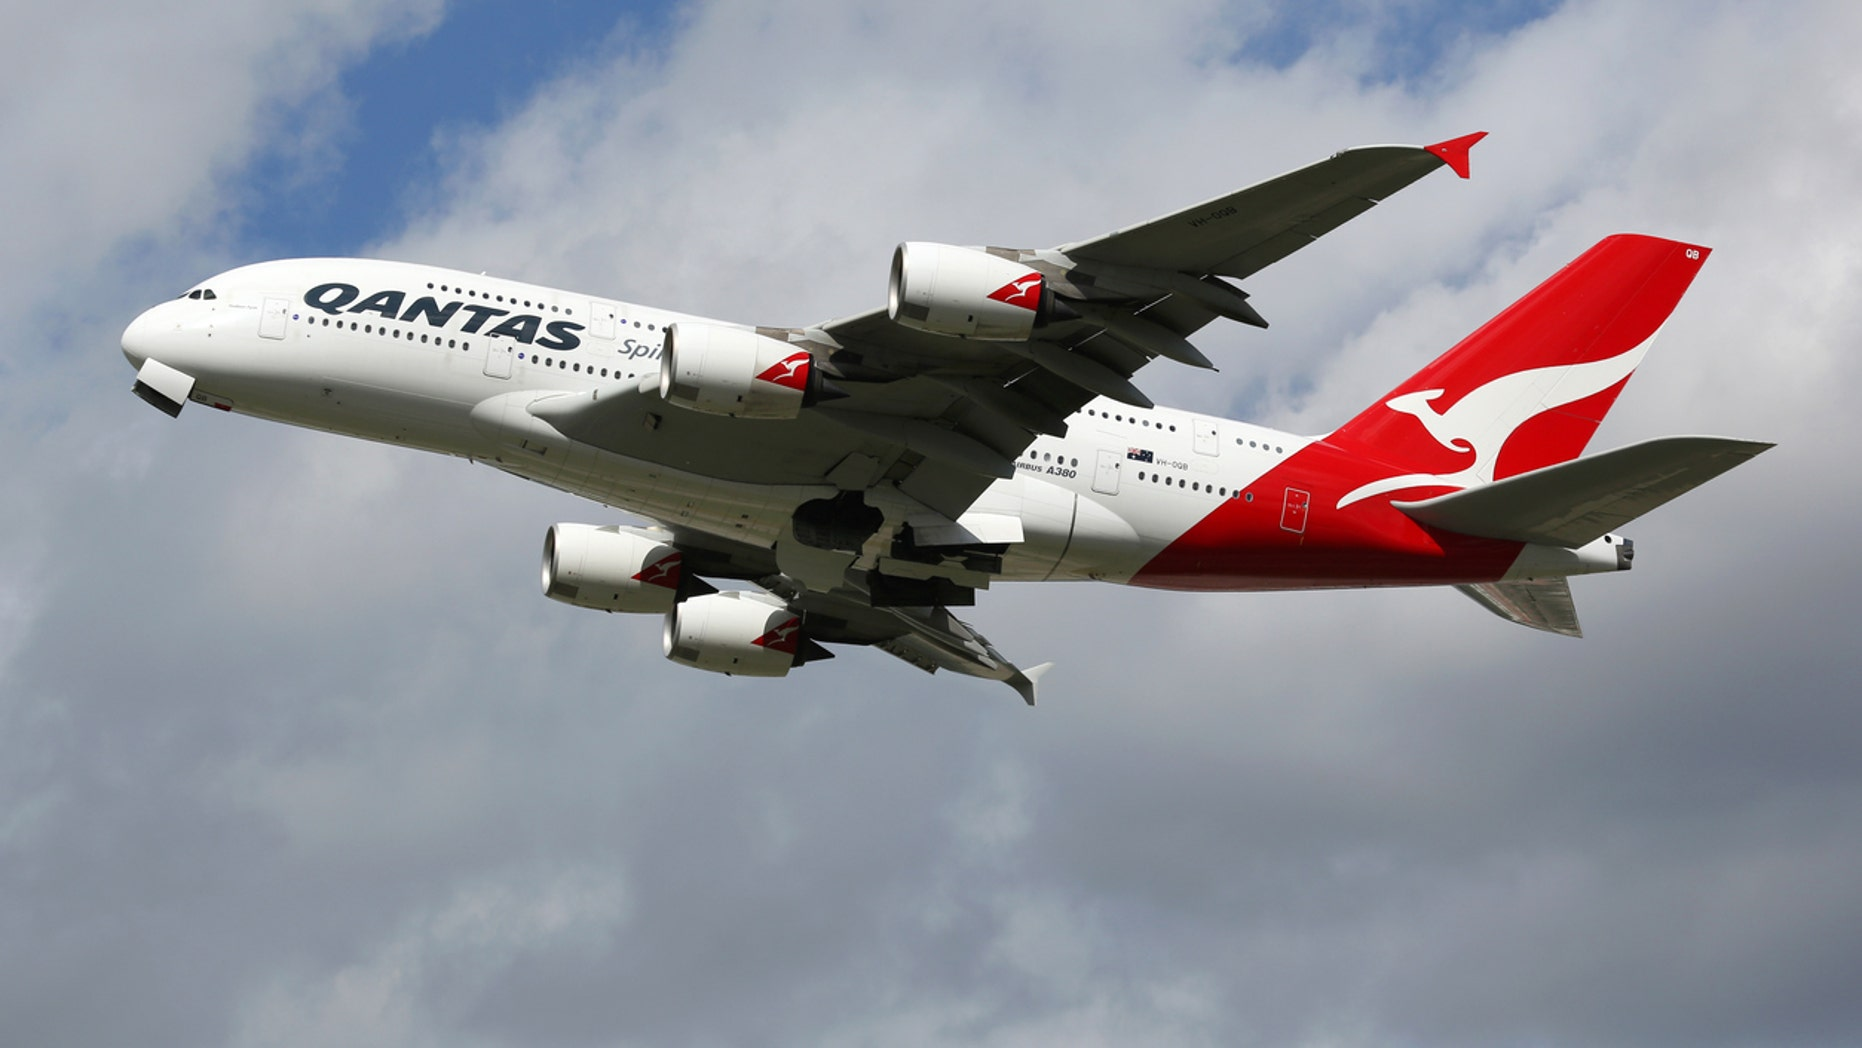 London Heathrow, United Kingdom - August 28, 2015: A Qantas Airways Airbus A380 with the registration VH-OQB taking off from London Heathrow Airport (LHR) in the United Kingdom. The Airbus A380 is the world's largest passenger airliner. Qantas is the flag carrier airline of Australia.